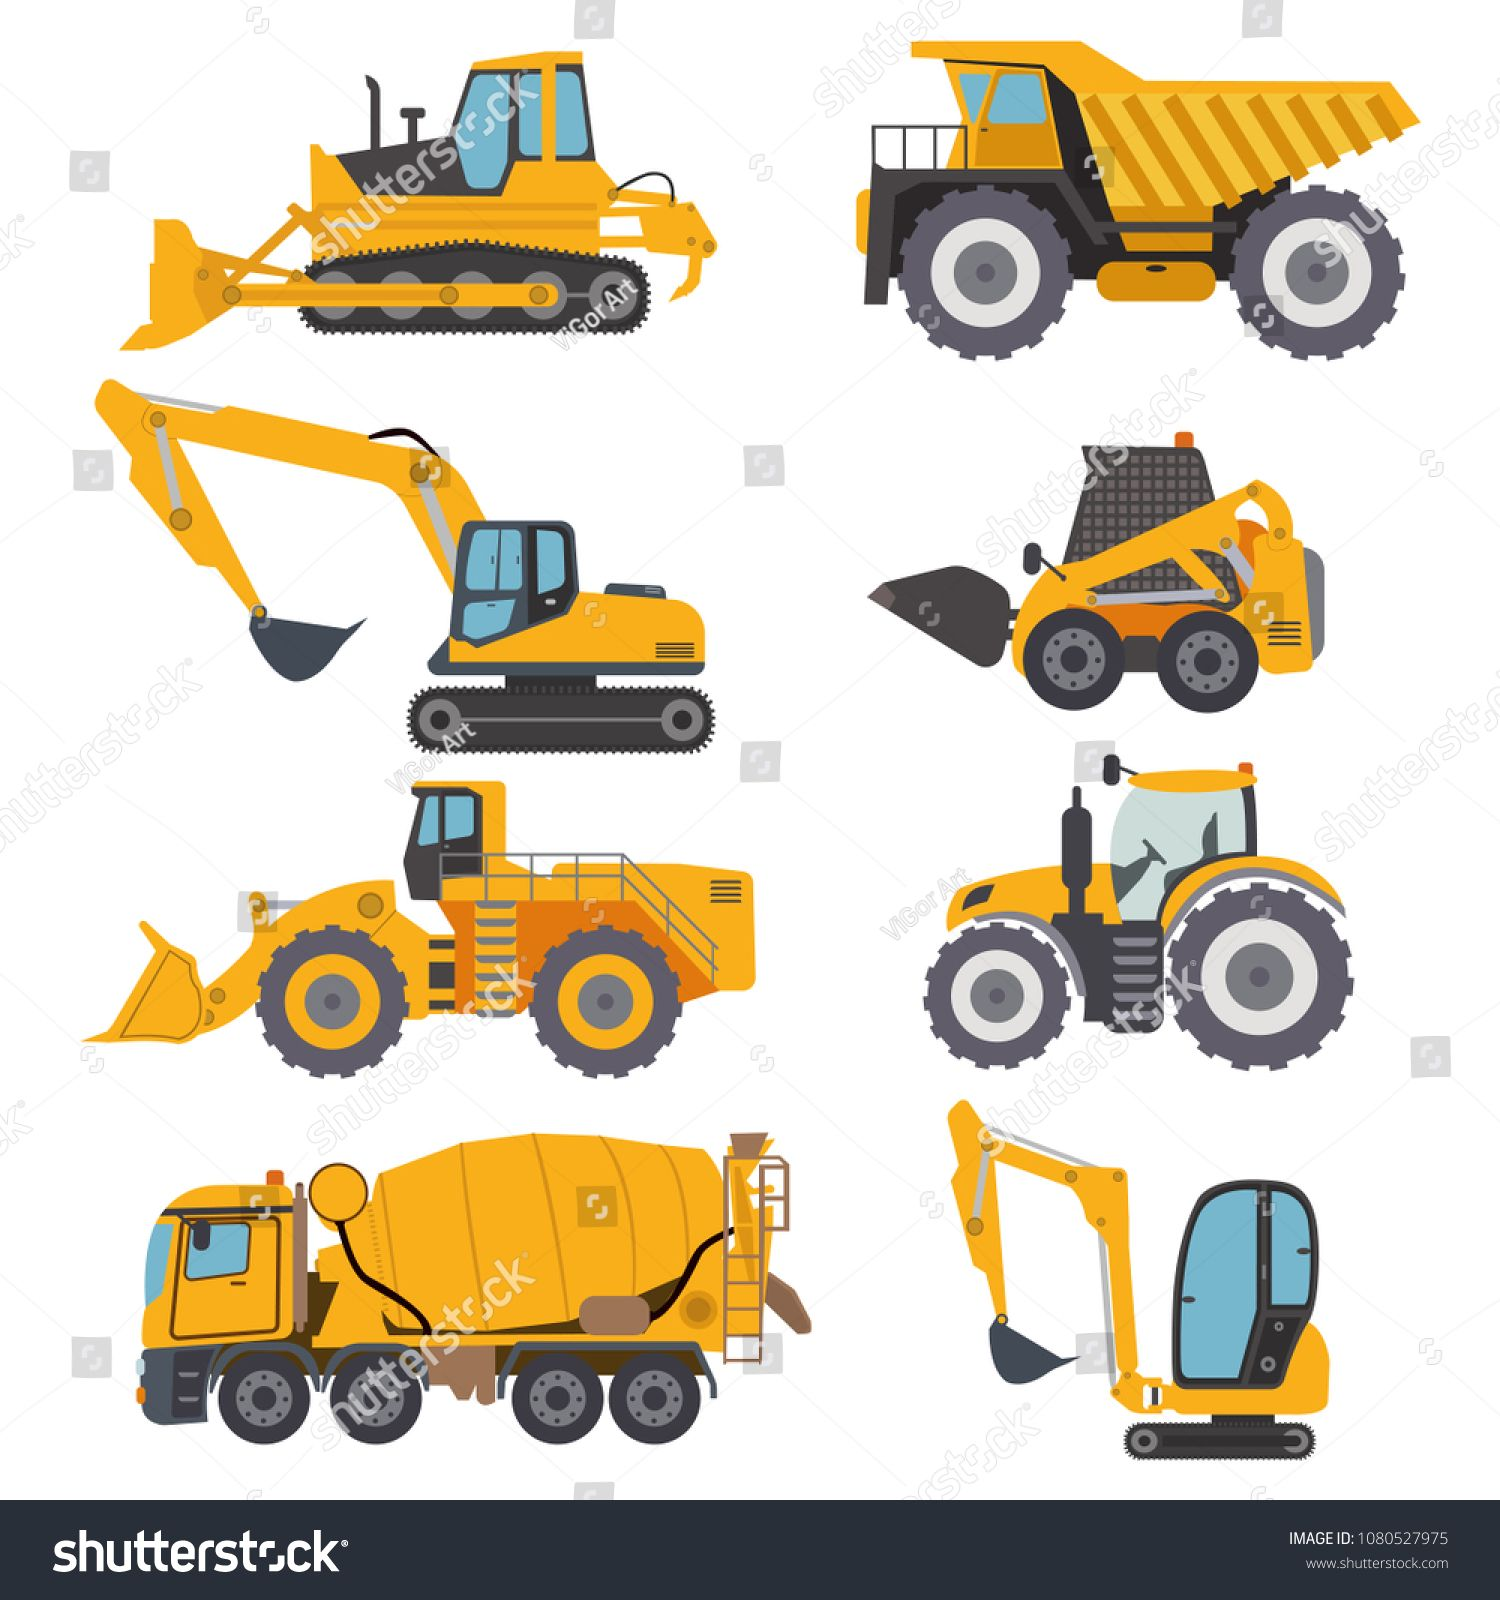 Construction Machinery Vehicle Industry Truck Equipment Heavy